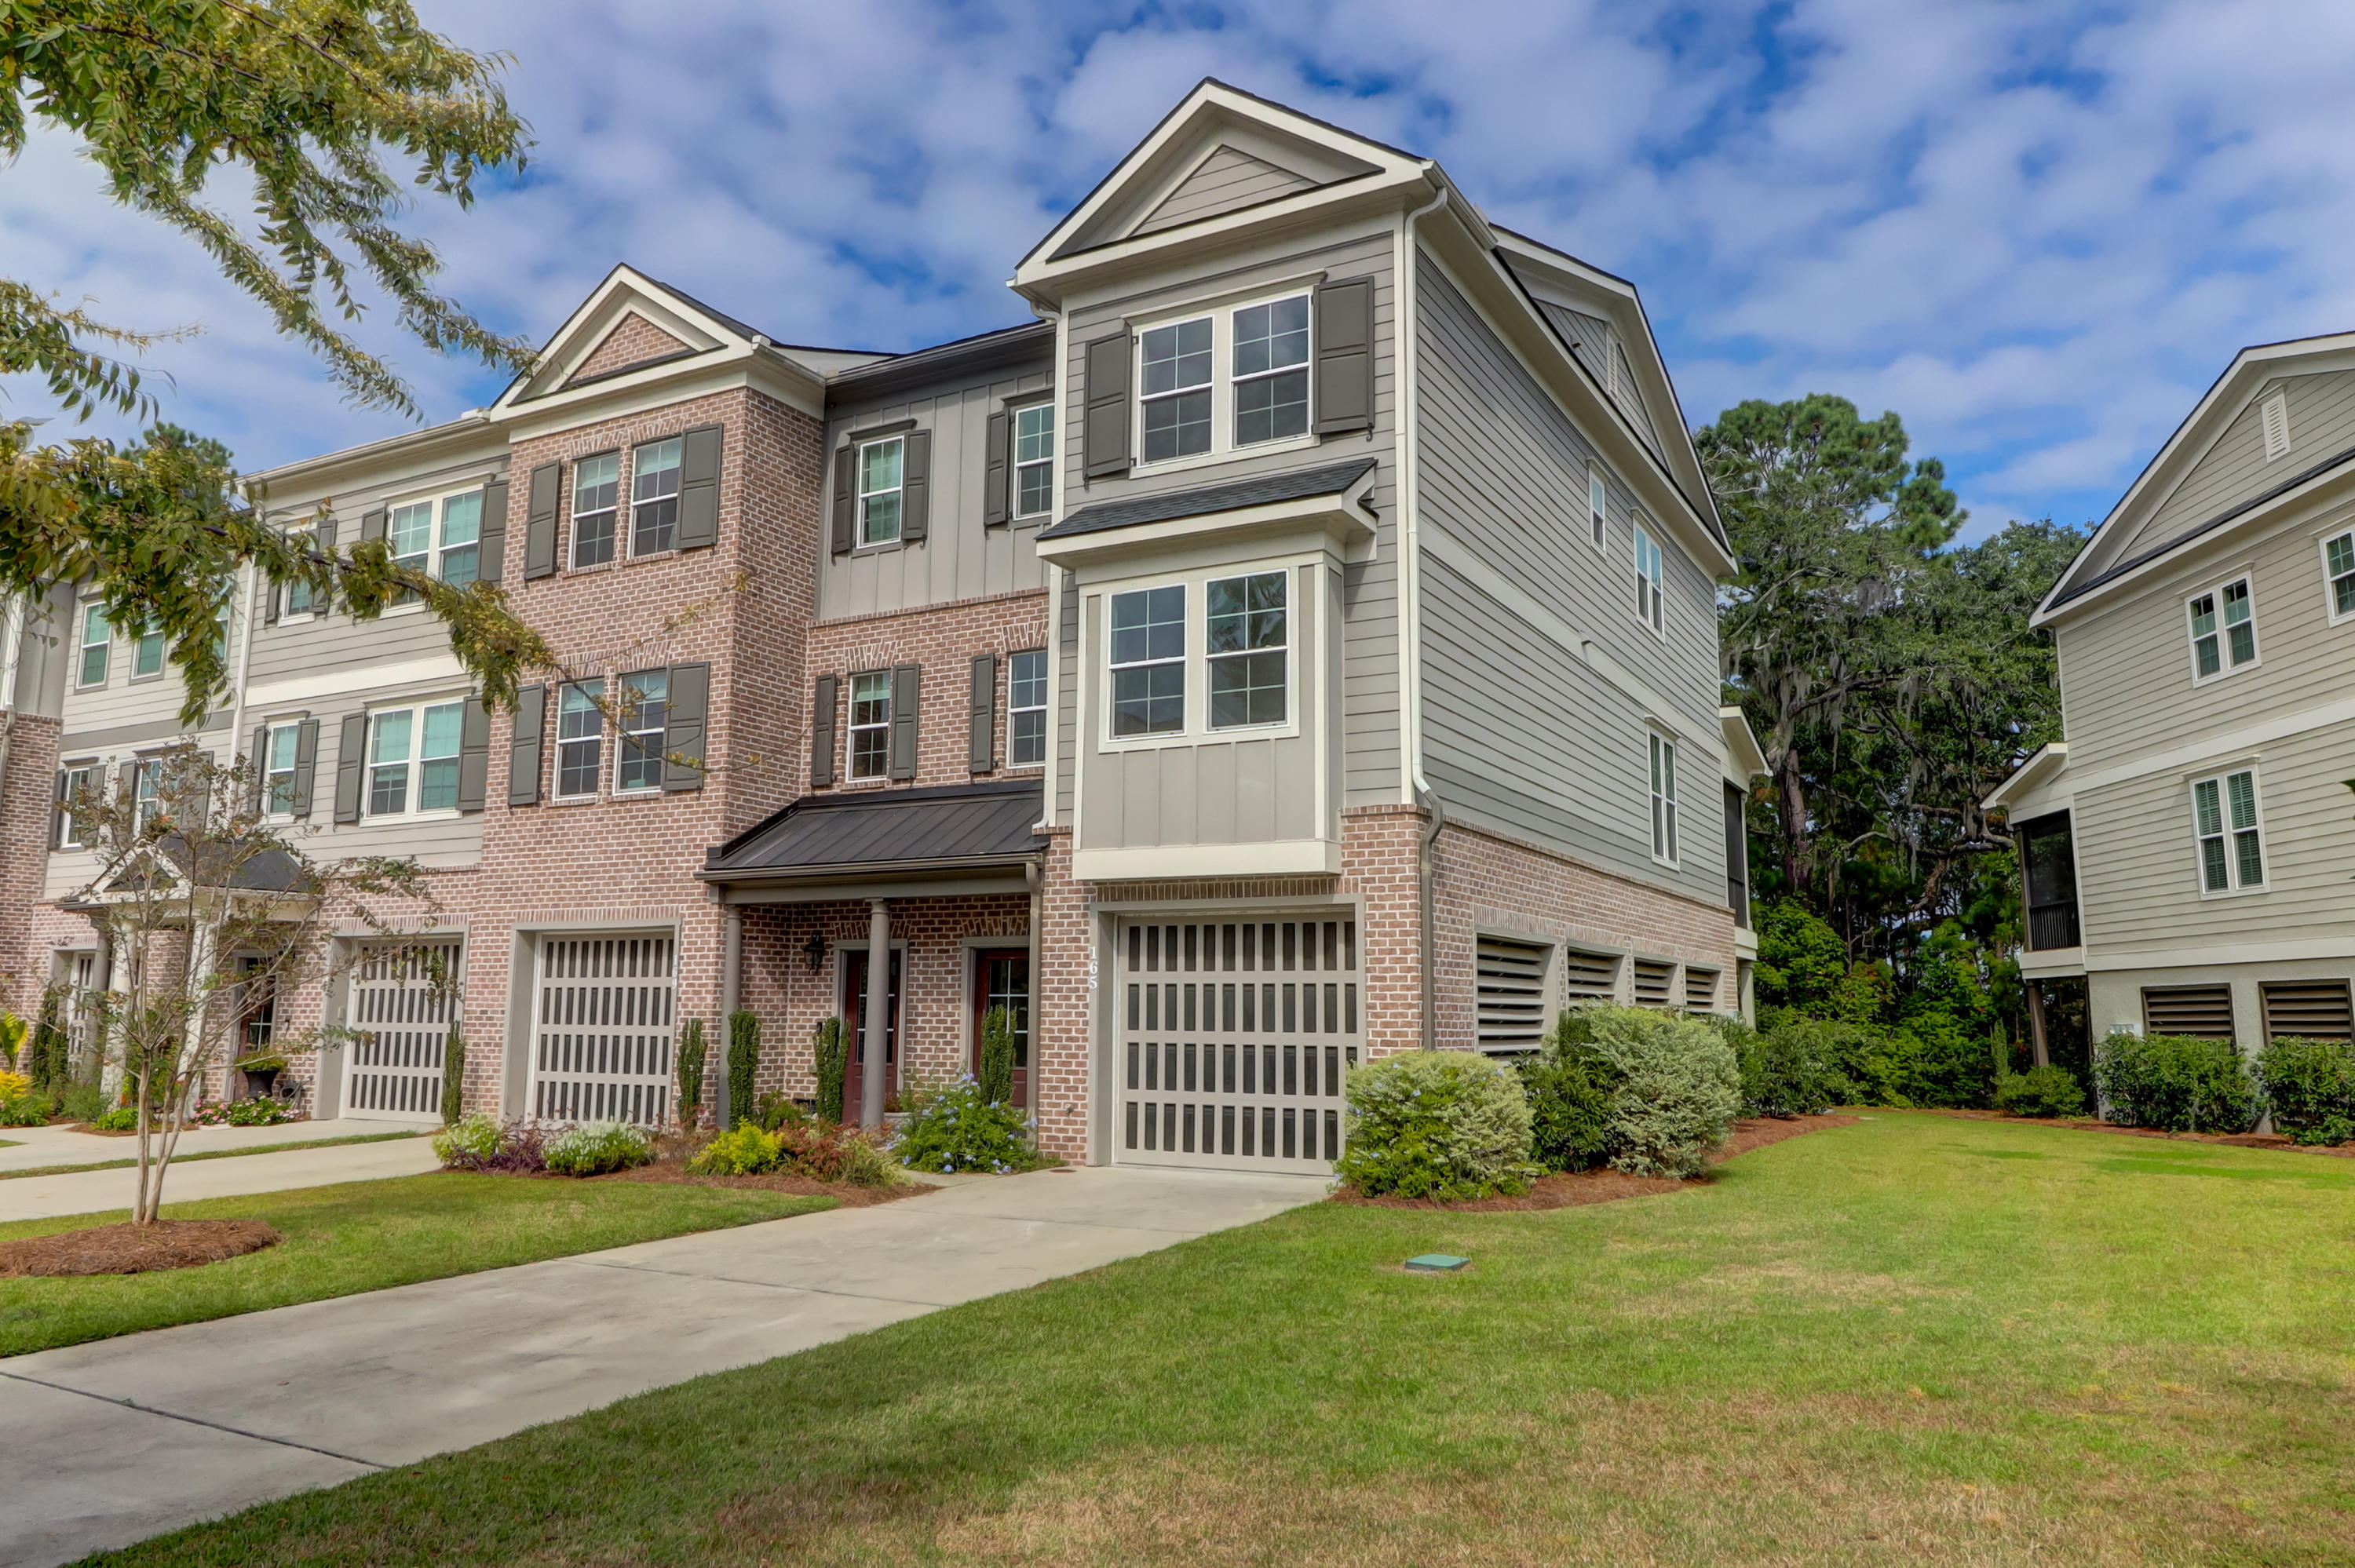 Etiwan Pointe Homes For Sale - 165 Slipper Shell, Mount Pleasant, SC - 24